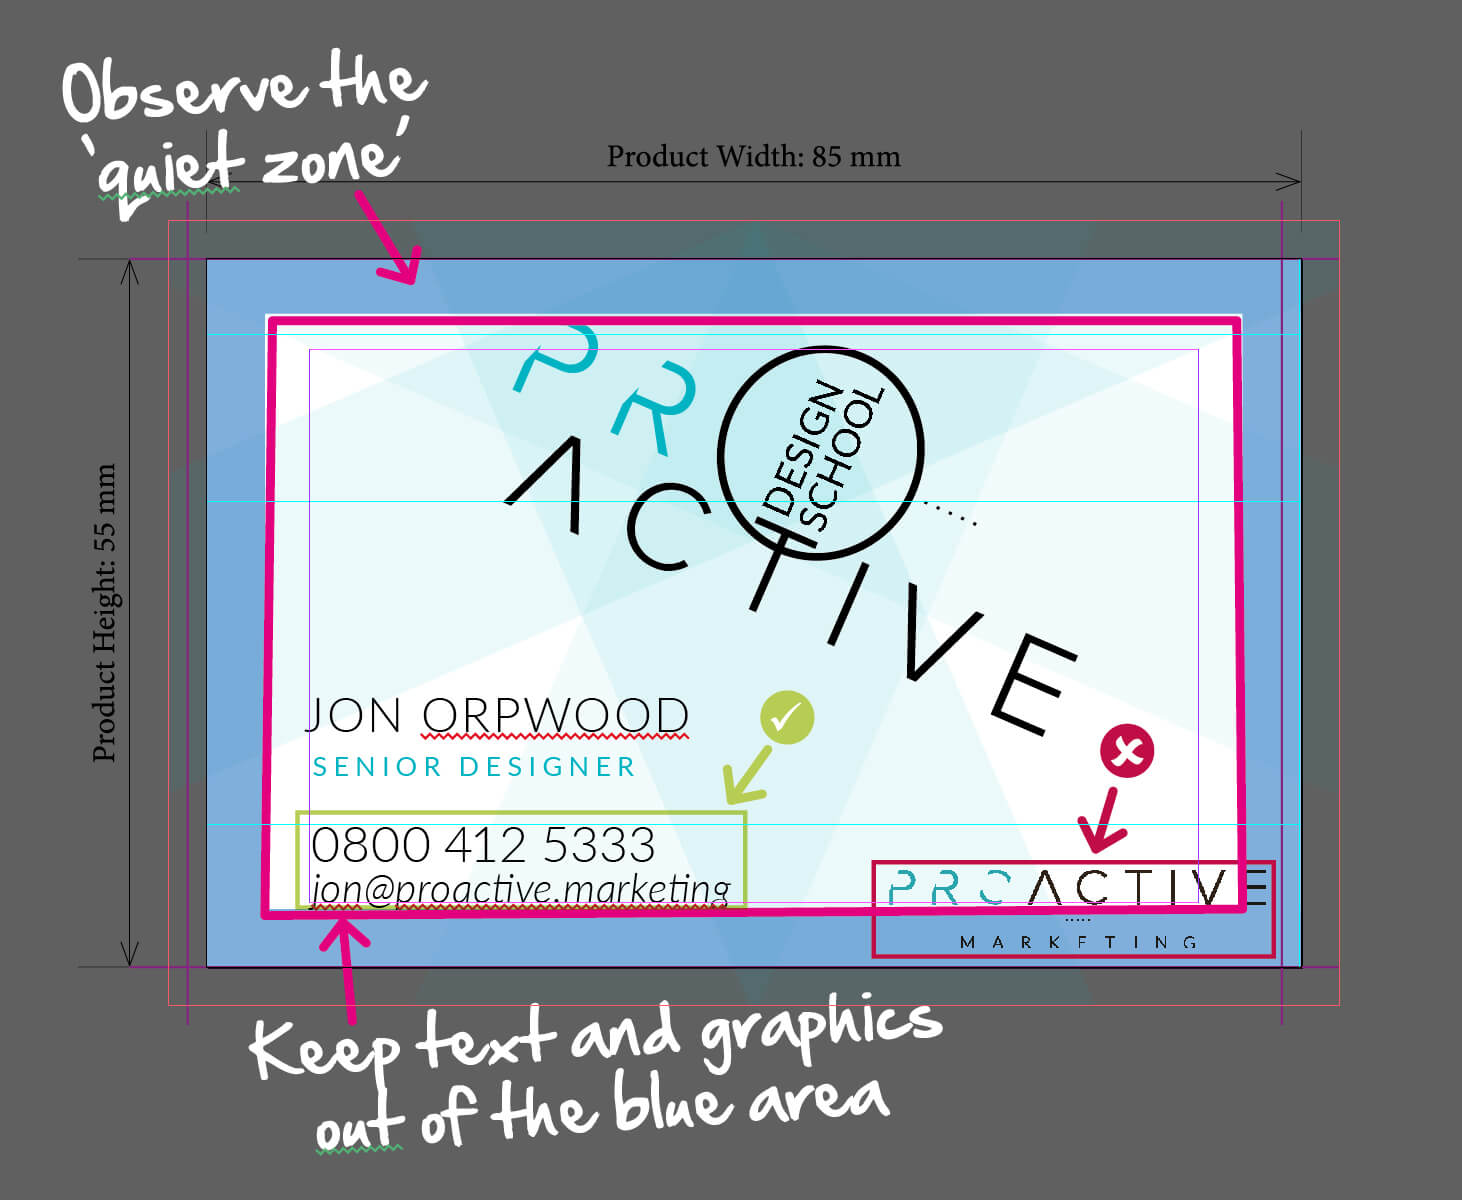 Designing Business Cards - The Quiet Zone